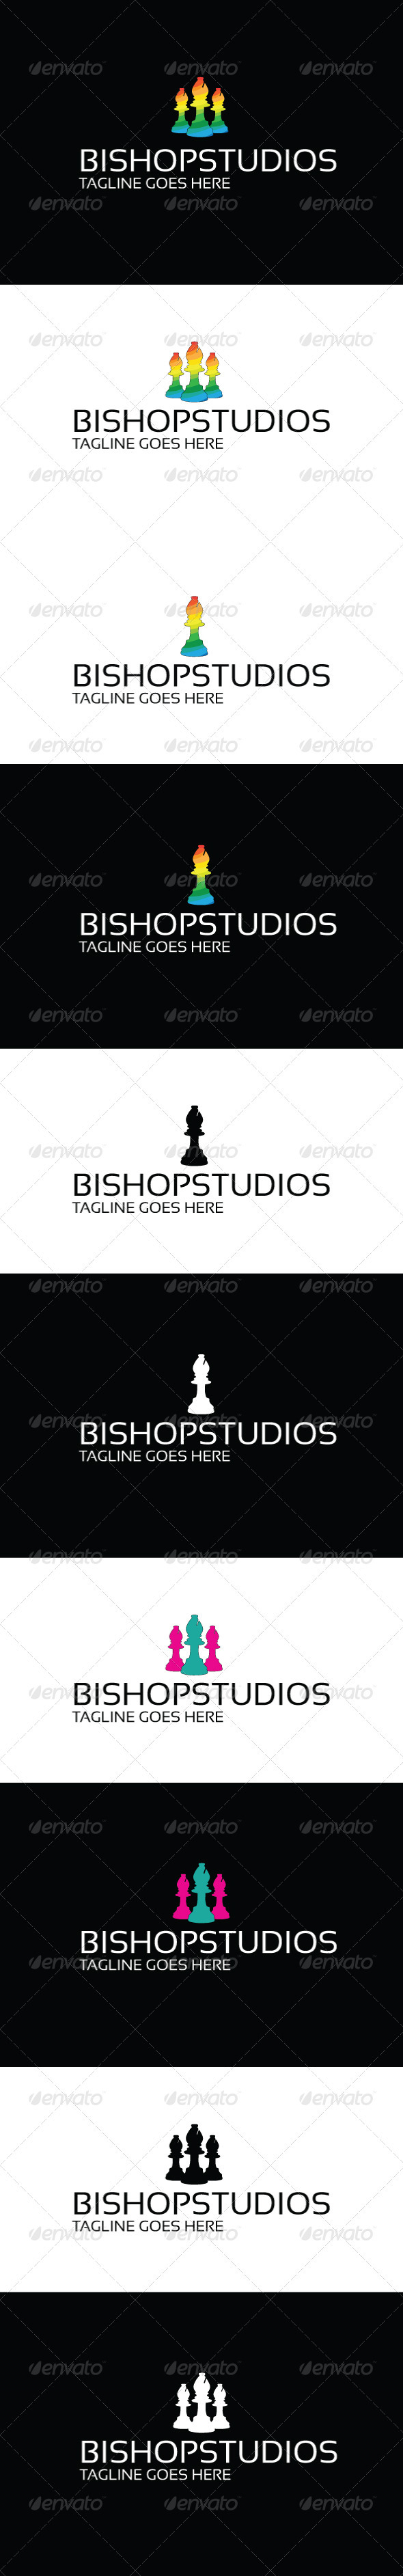 Bishop Studios Logo - Objects Logo Templates